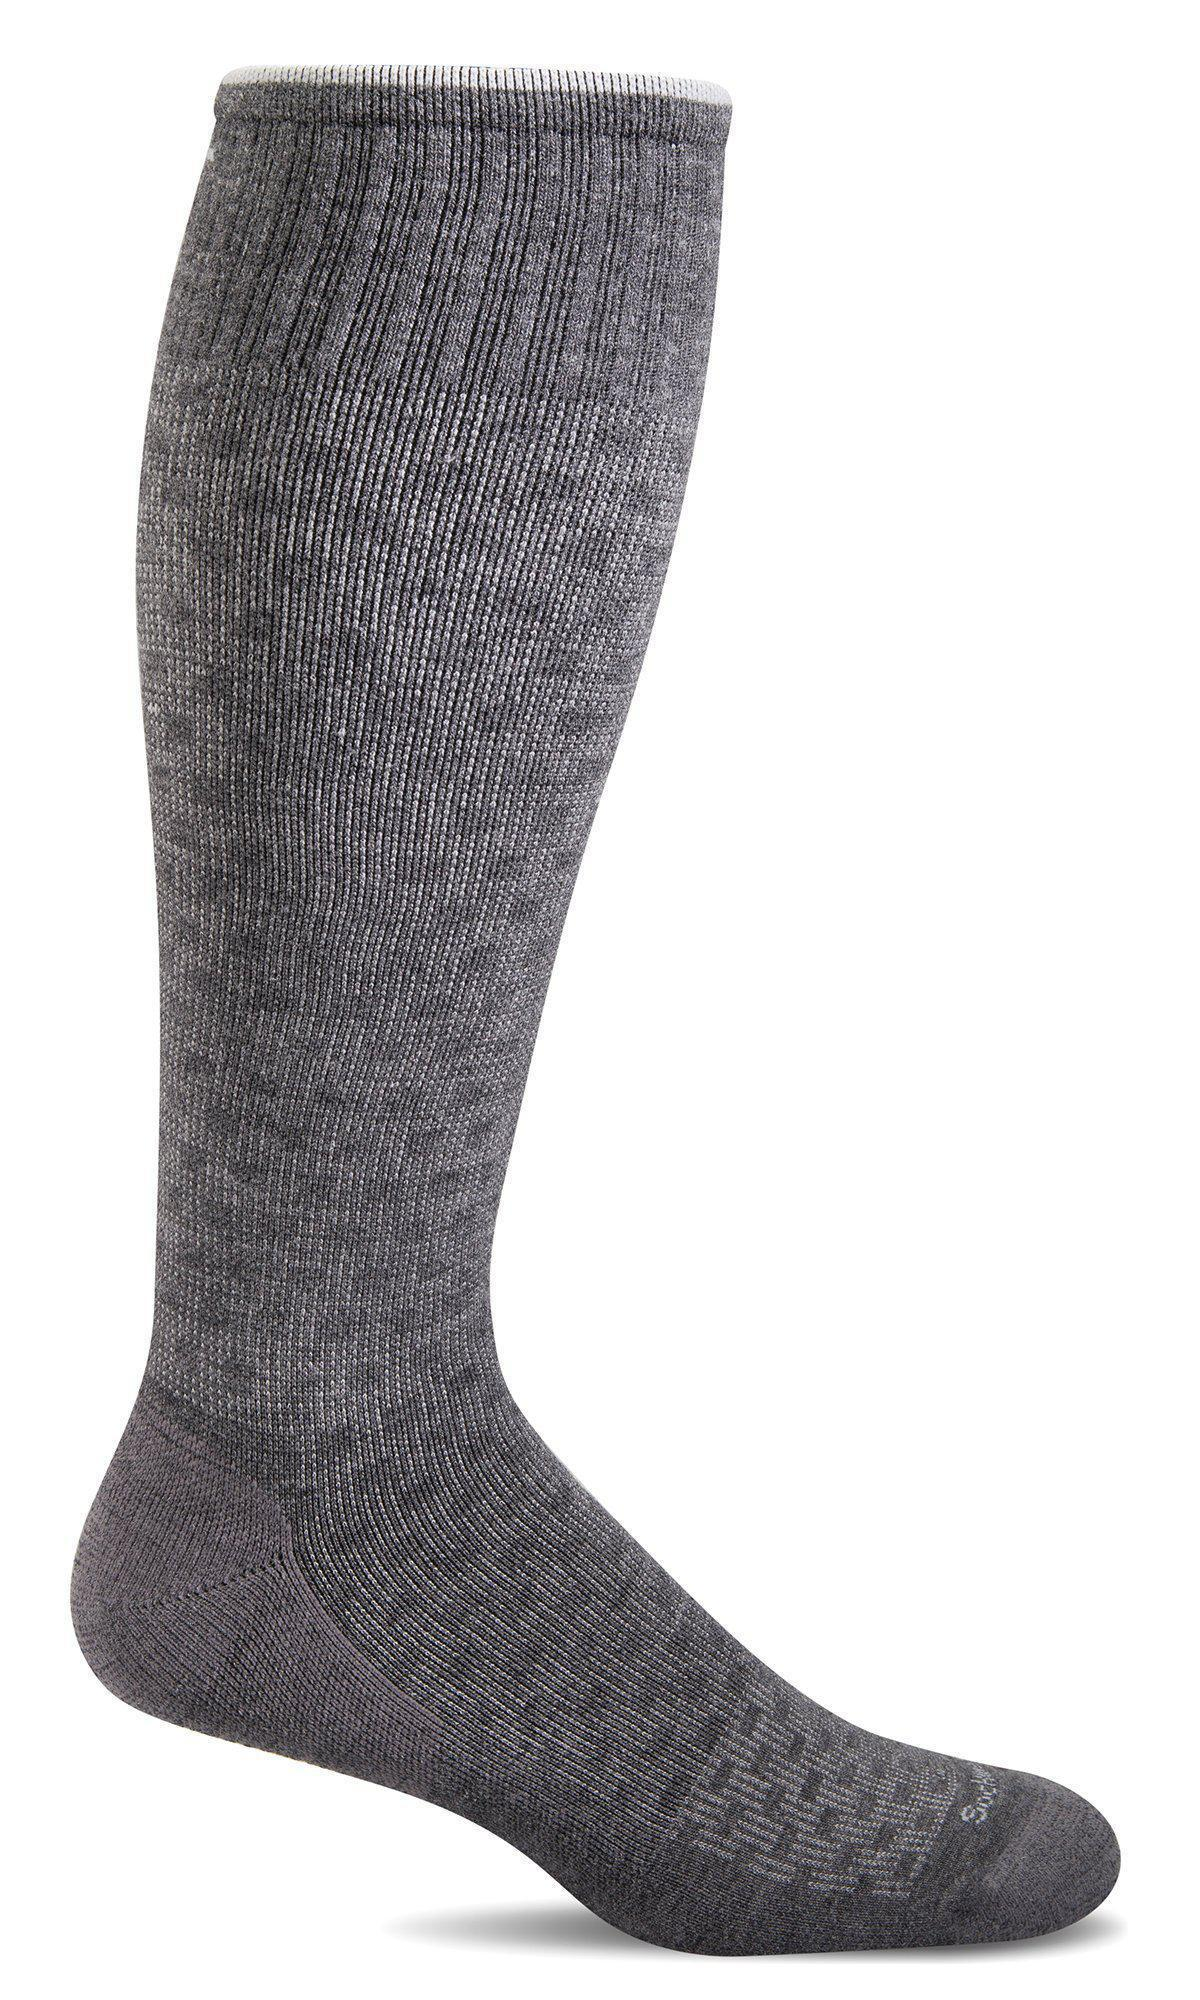 Sockwell - Shadow Box Moderate Graduated Compression (15-20 mmHg) Socks | Men's - Knock Your Socks Off